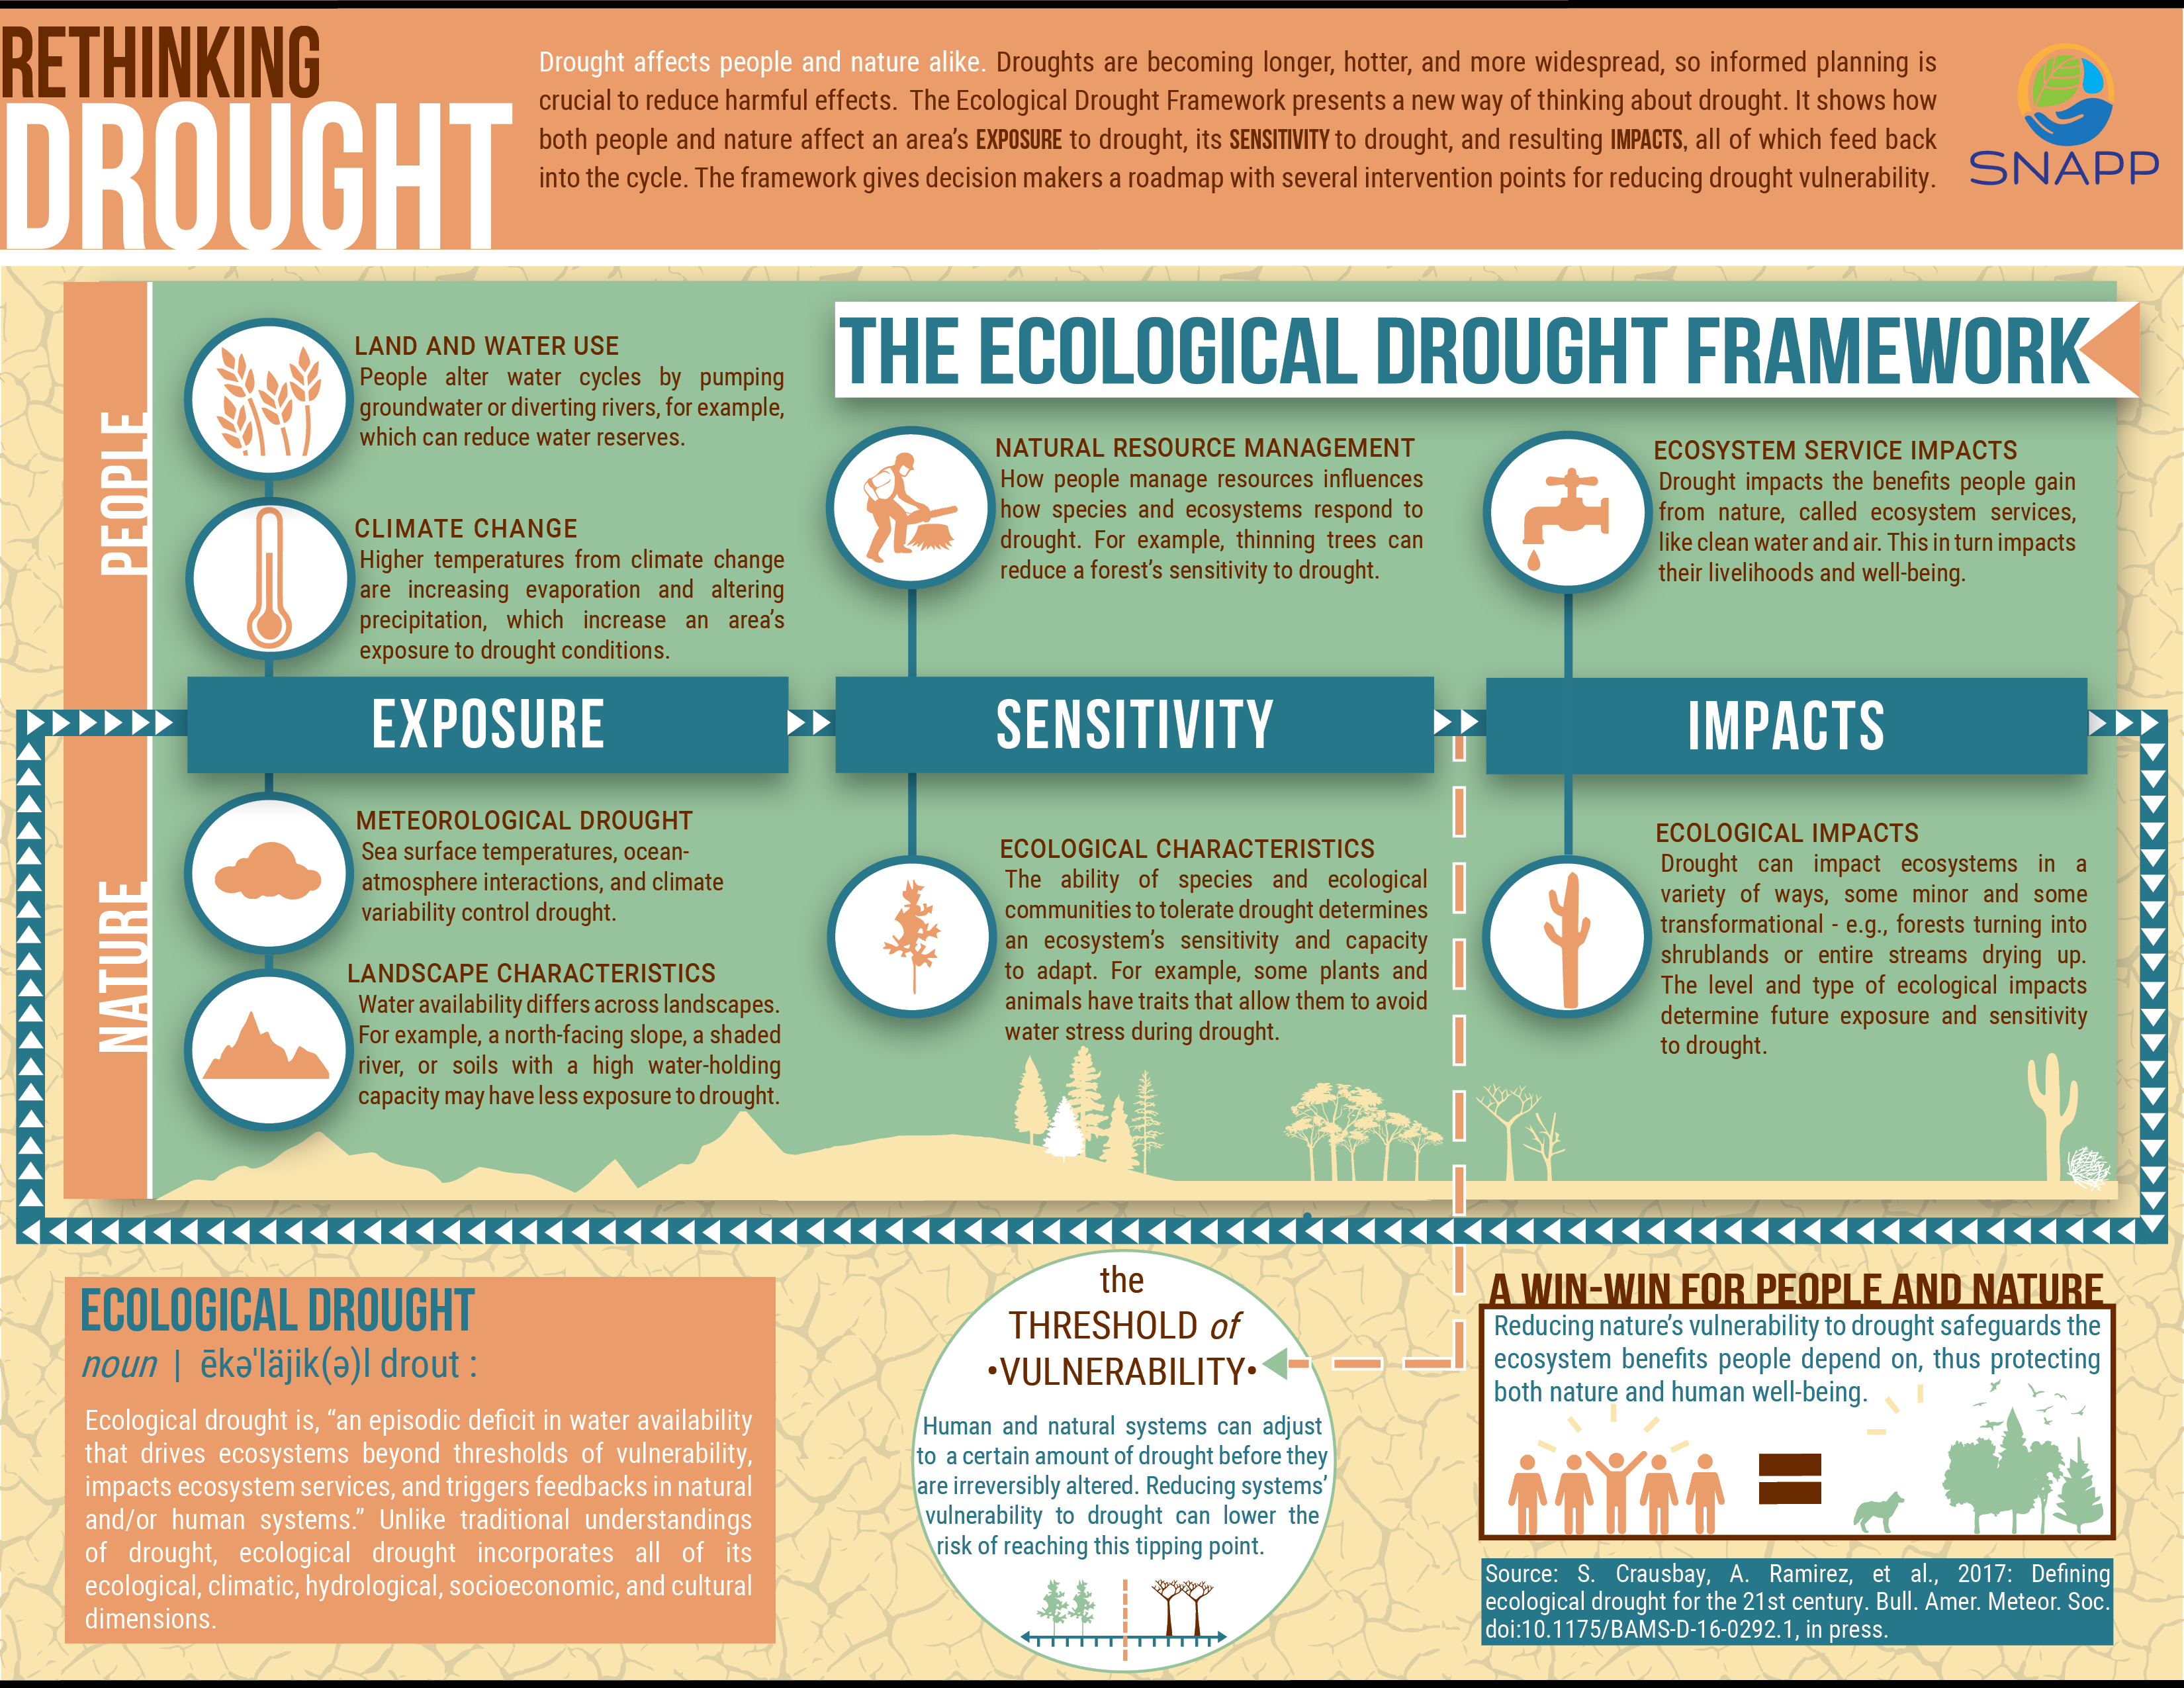 Redefining drought could lead to better preparation